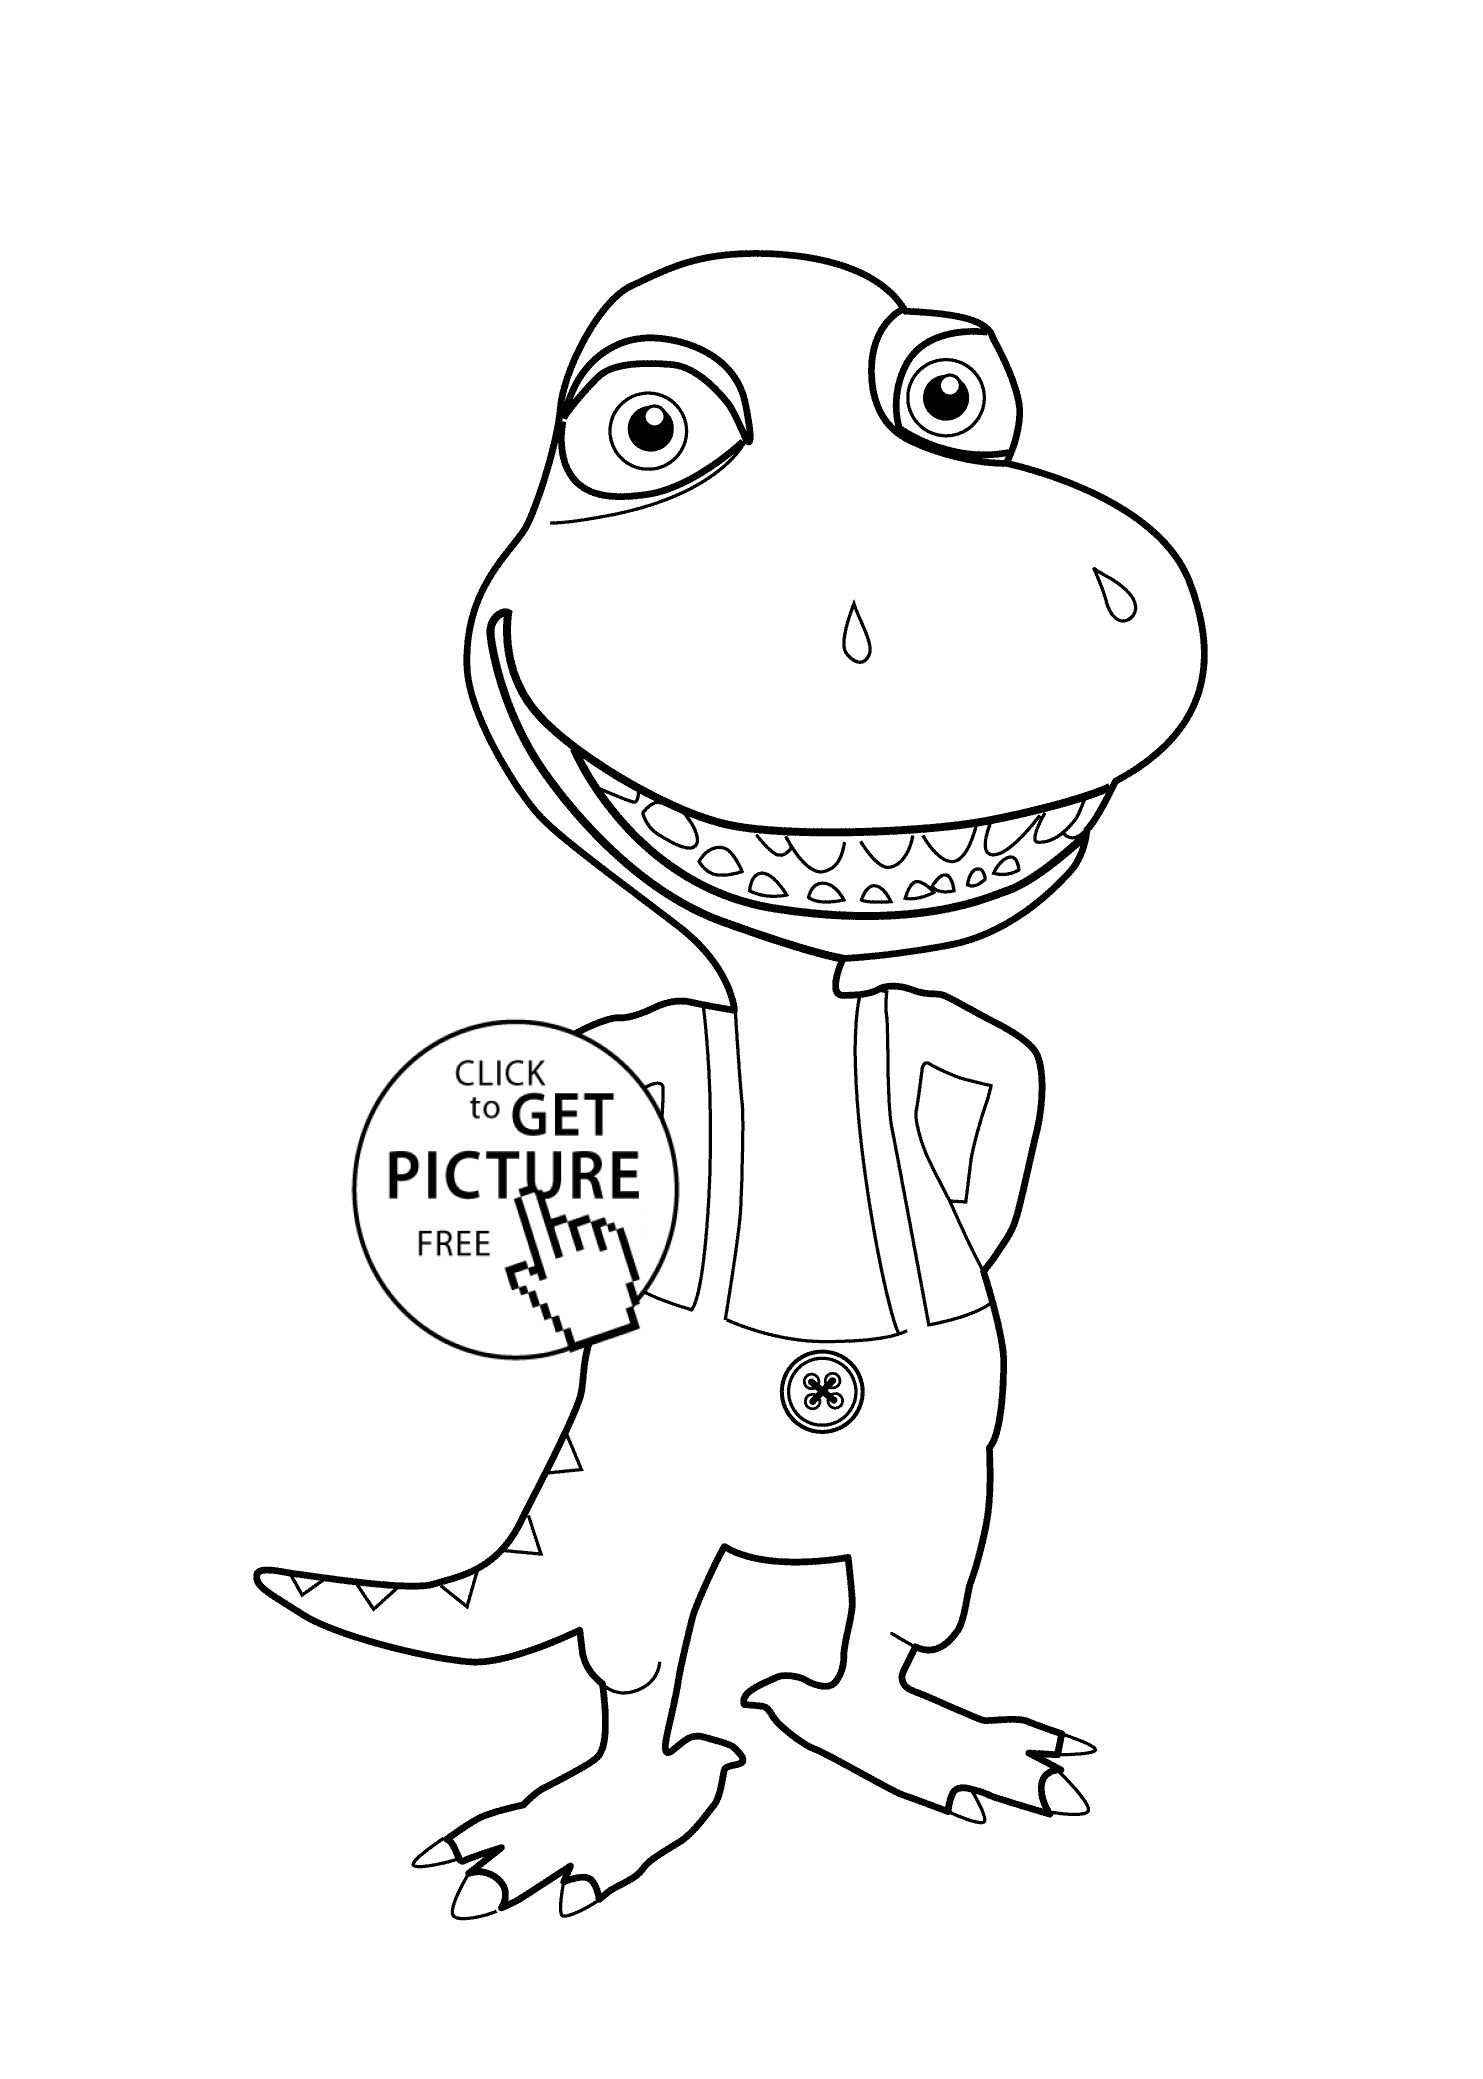 Dinosaur Coloring Pages Dinosaur Train Coloring Page For